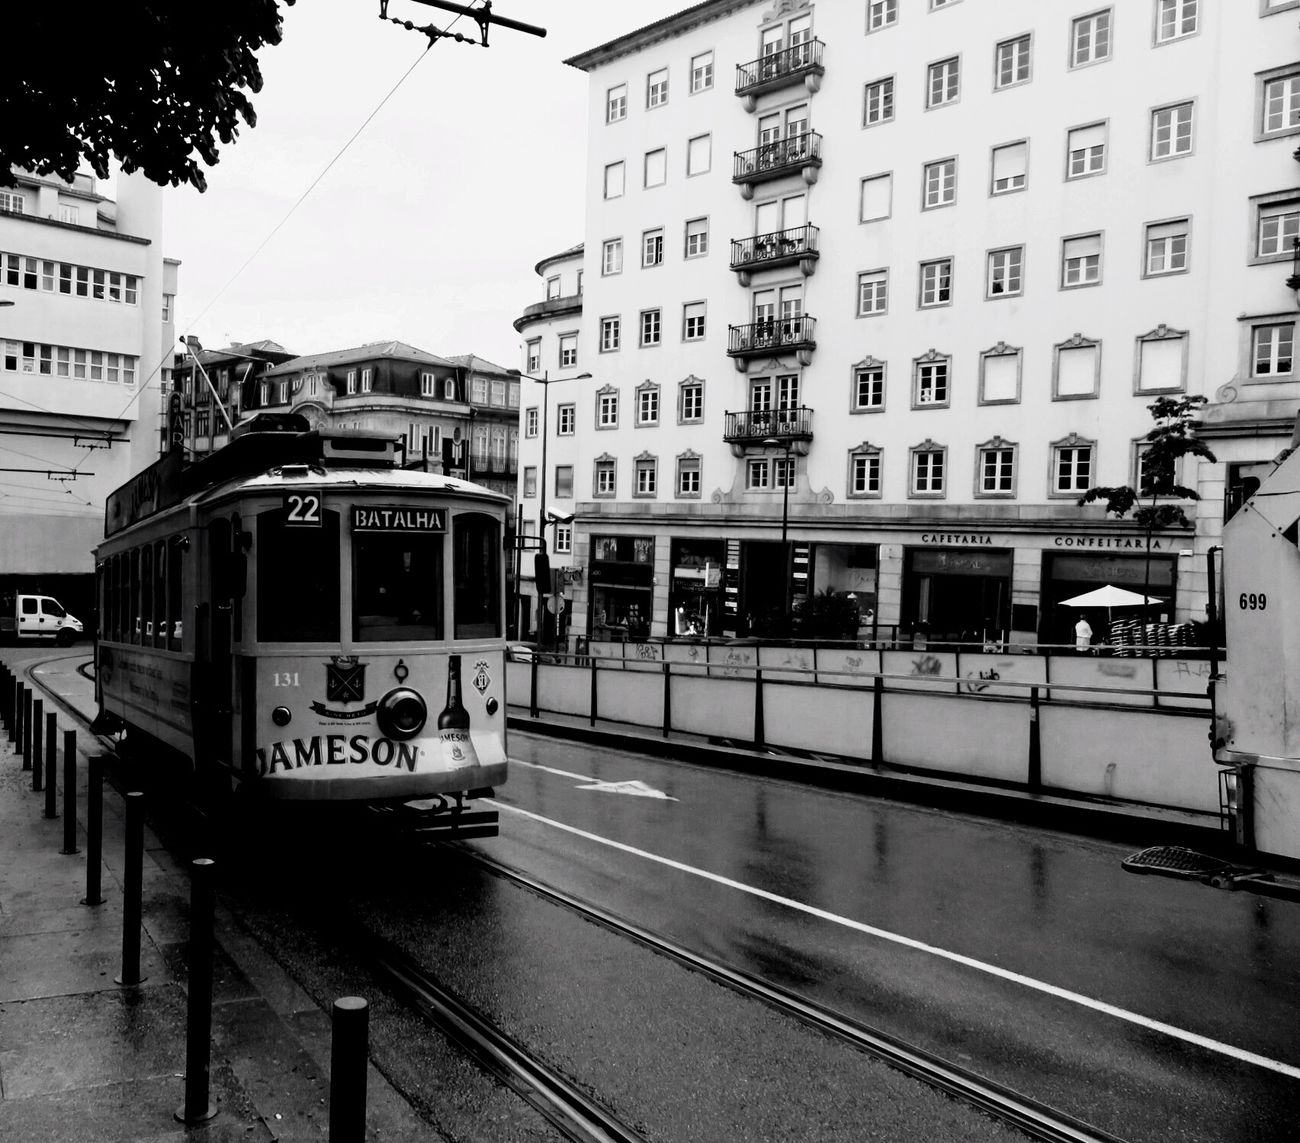 The Old Tram in Porto 😆👍‼️ Transportation City Building Exterior Street Built Structure Public Transportation Architecture Tramway City Street Tram Cable Car Text Outdoors Land Vehicle Day No People Sky Clear Sky